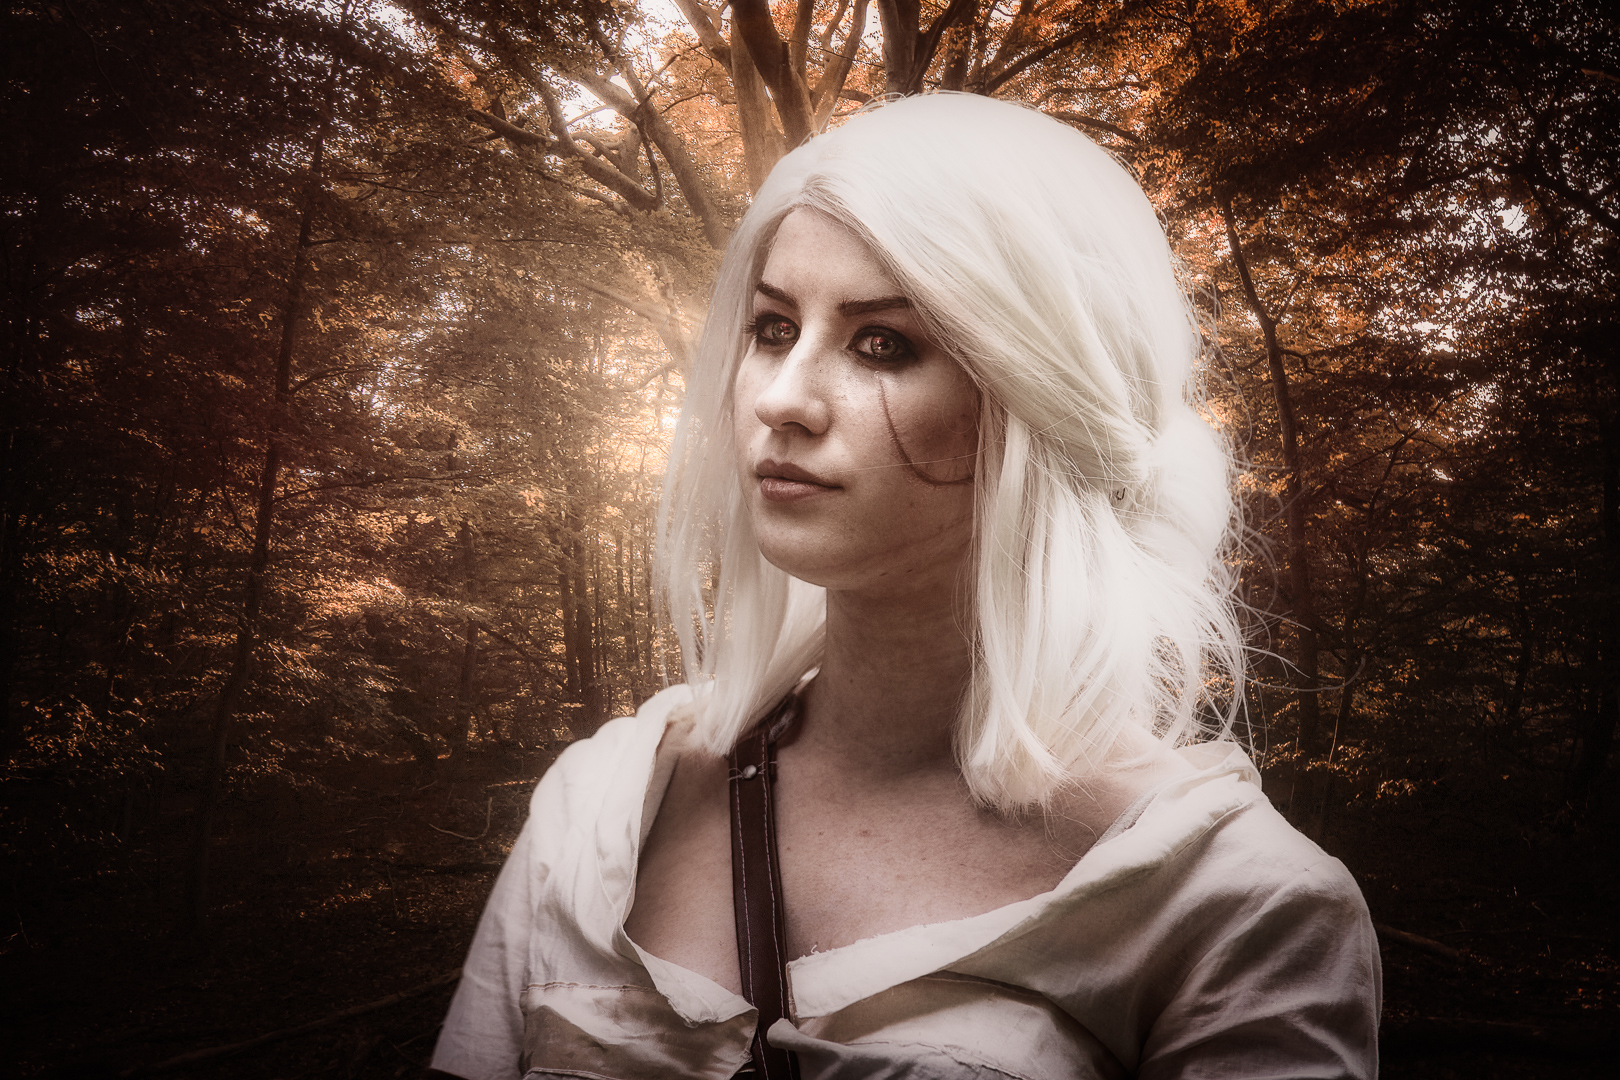 Connichi 2017 - Awesome con!  I met so many great cosplayers, I need to share their creative artwork, so all know that this is art and no childsplay :)  Cosplay: Cirilla Fiona Elen Riannon (Witcher) Cosplayer: @enyu_cosplay